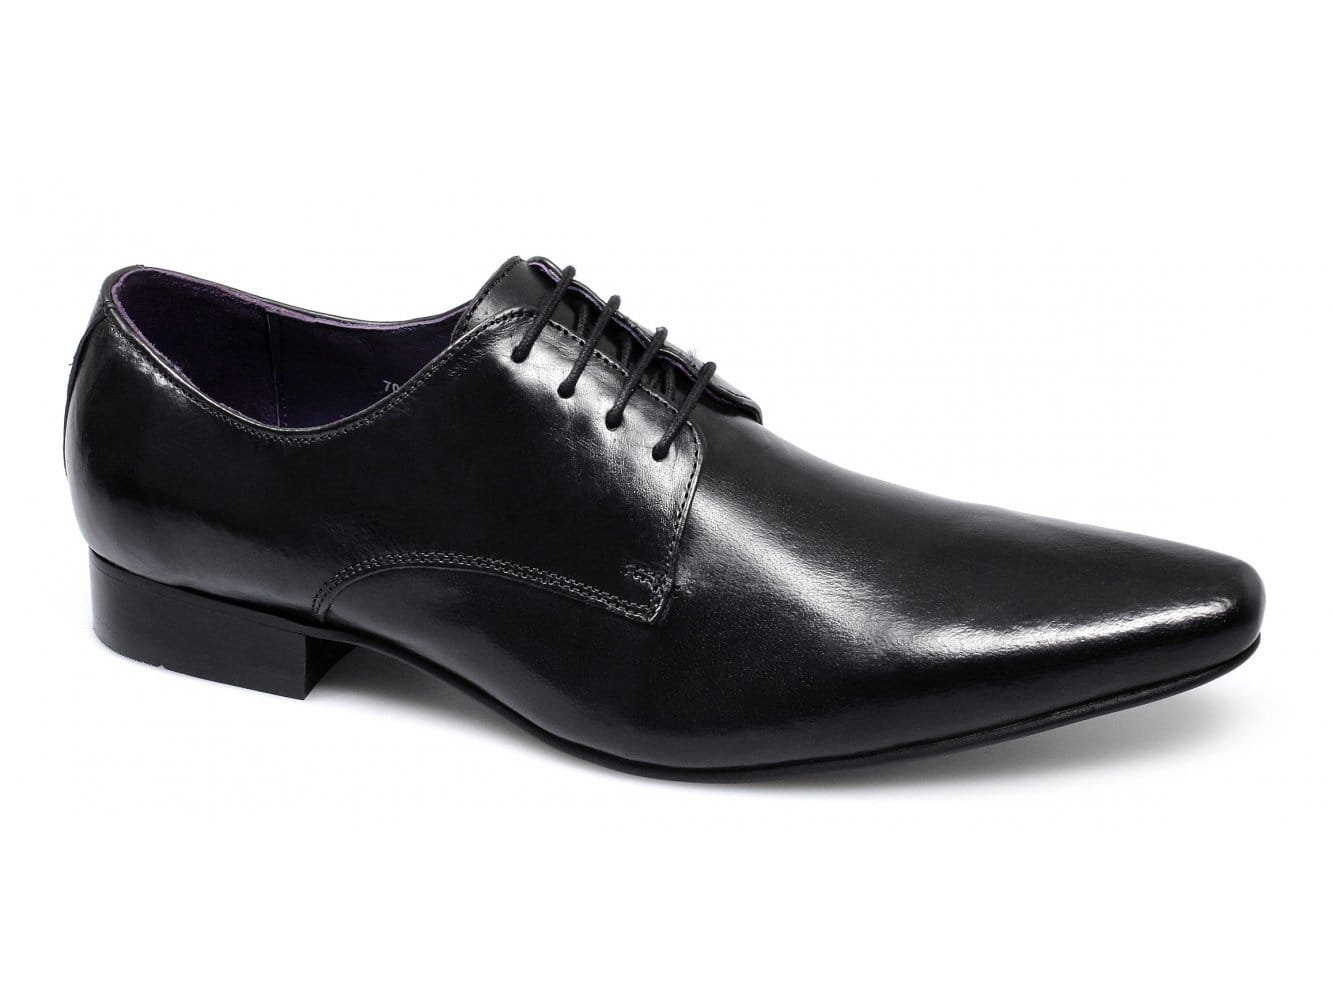 Gaorui Men Fashion Dress Business Shoe Pointed Toe Floral Patent Leather Lace Up Oxford Black Brown Red Grey. by Gaorui. $ - $ $ 24 $ 27 handsome rhinestone and suede trim pointed toe slip on mens dress shoe Z-joyee Mens Patent Leather Tuxedo Dress Shoes Lace up Pointed Toe Oxfords Formal Wedding Shoes. by Z-joyee. $